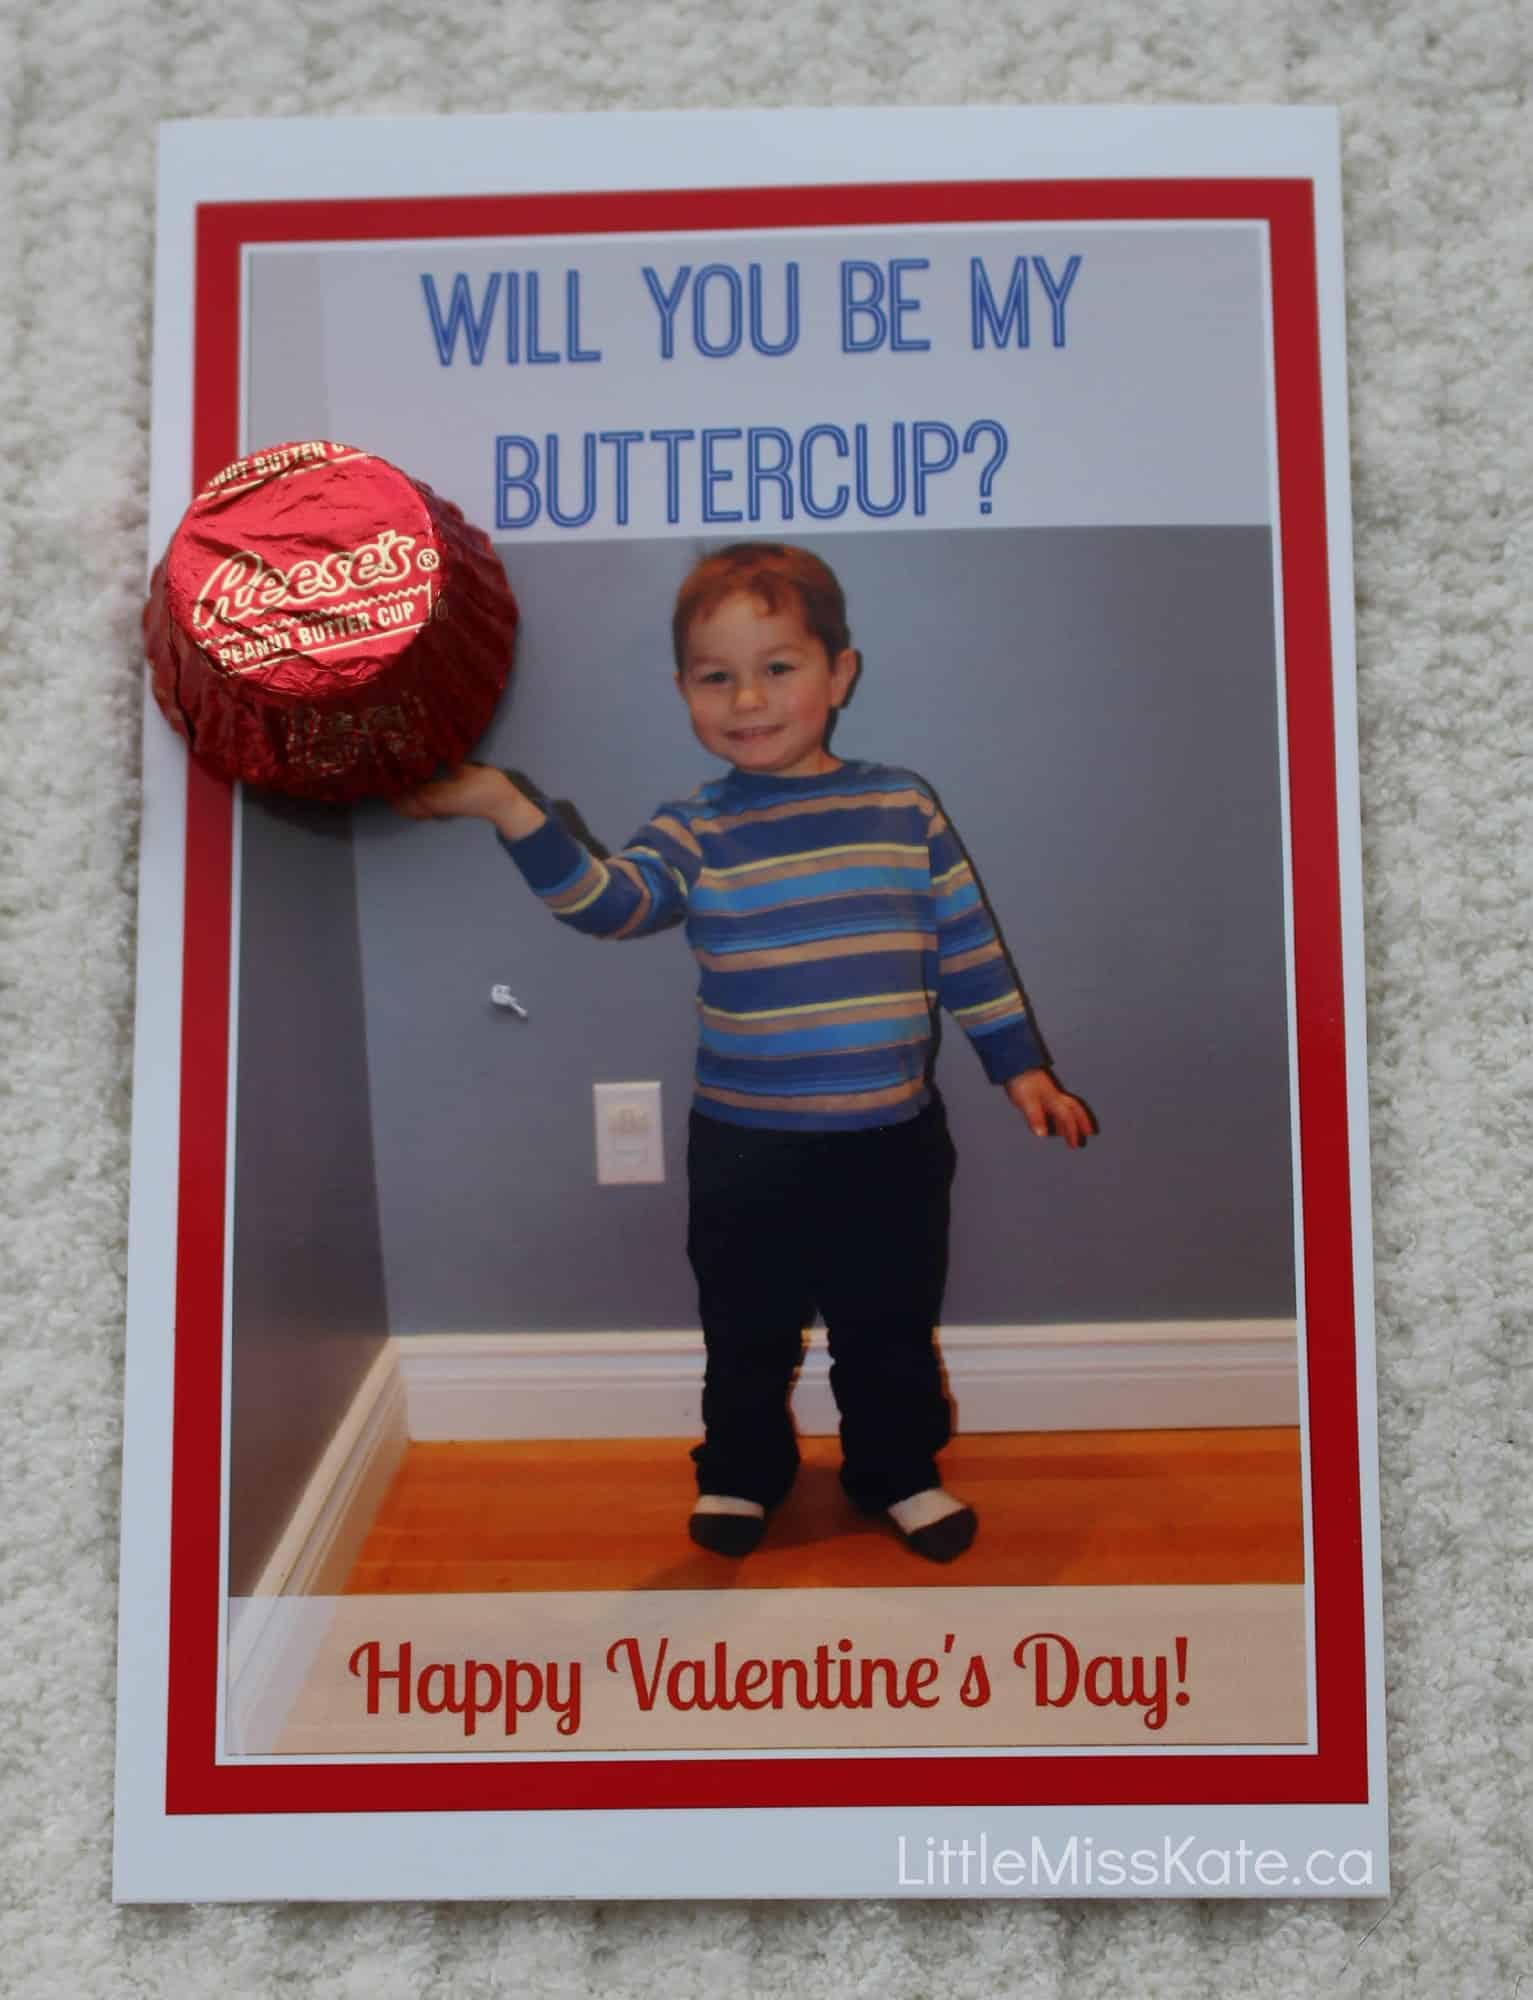 DIY Personalized Photo Valentine's Day Cards with Peanut Butter Cups via littlemisskate.ca